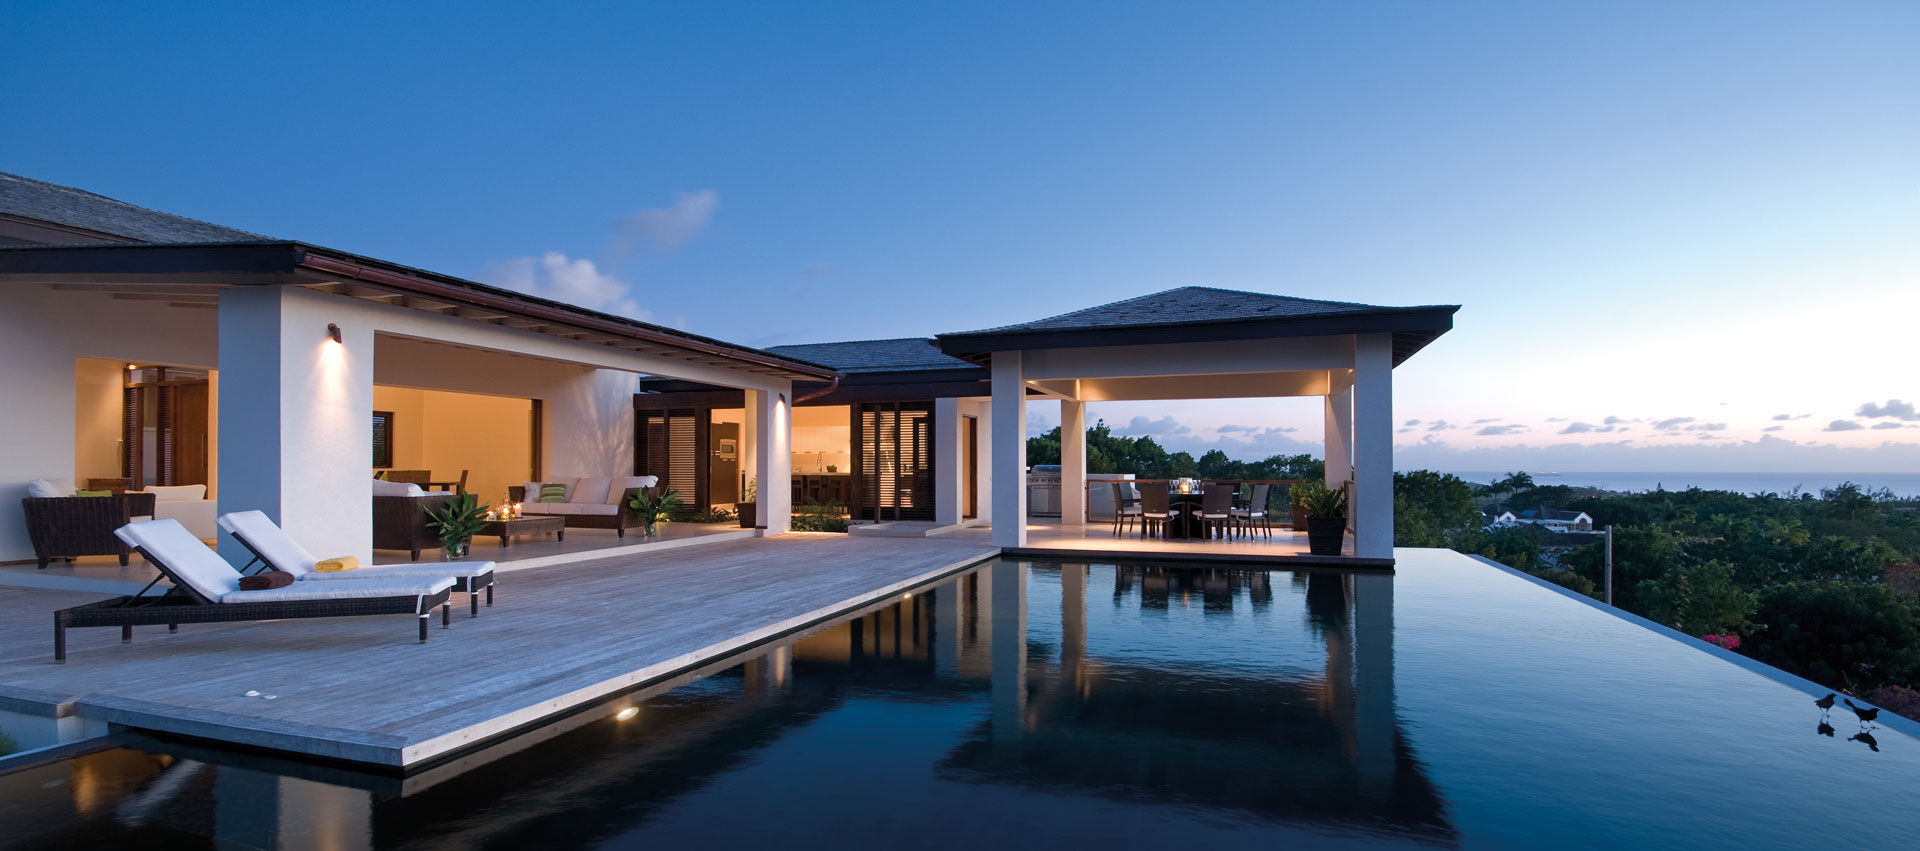 Five luxury homes for sale in barbados international for Luxury caribbean homes for sale